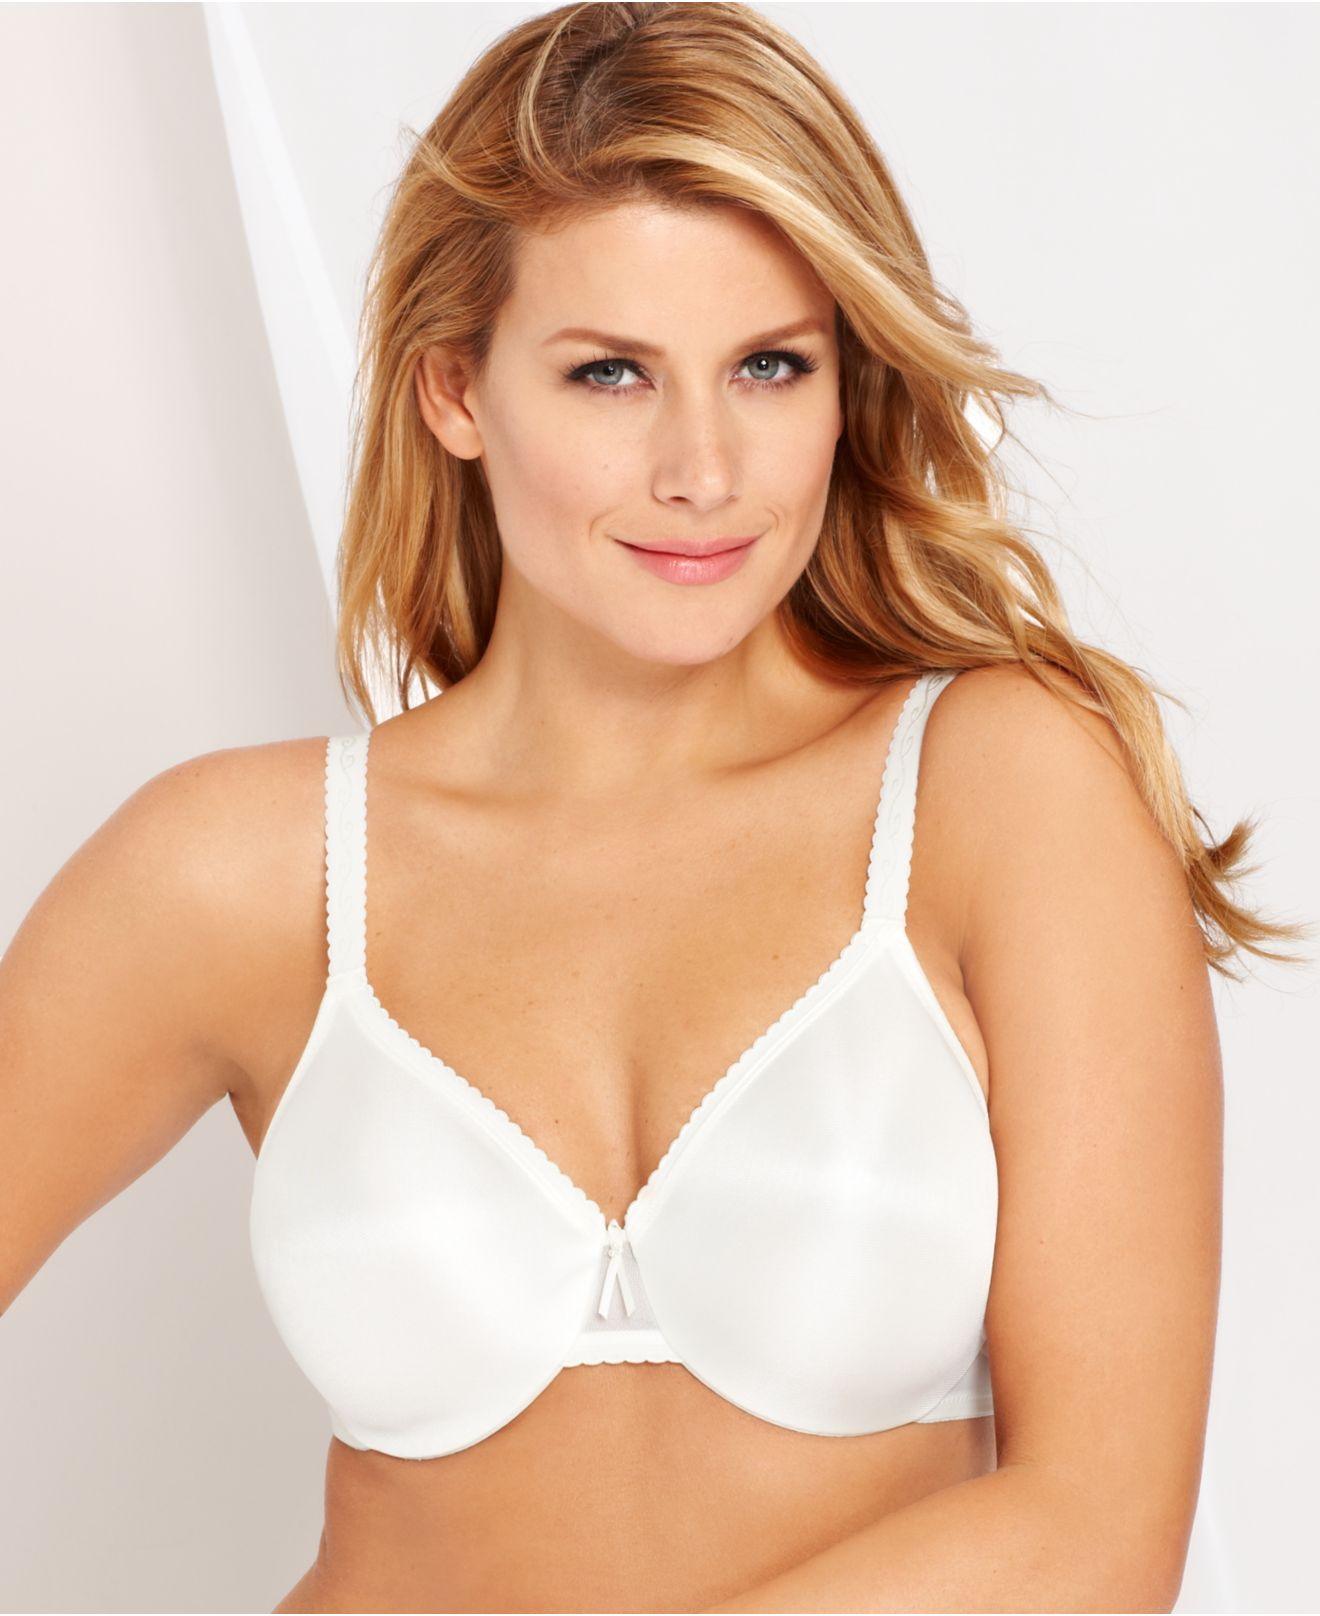 d6274493a3 Lyst - Wacoal Full Figure Simple Shaping Minimizer Bra 857109 in Natural